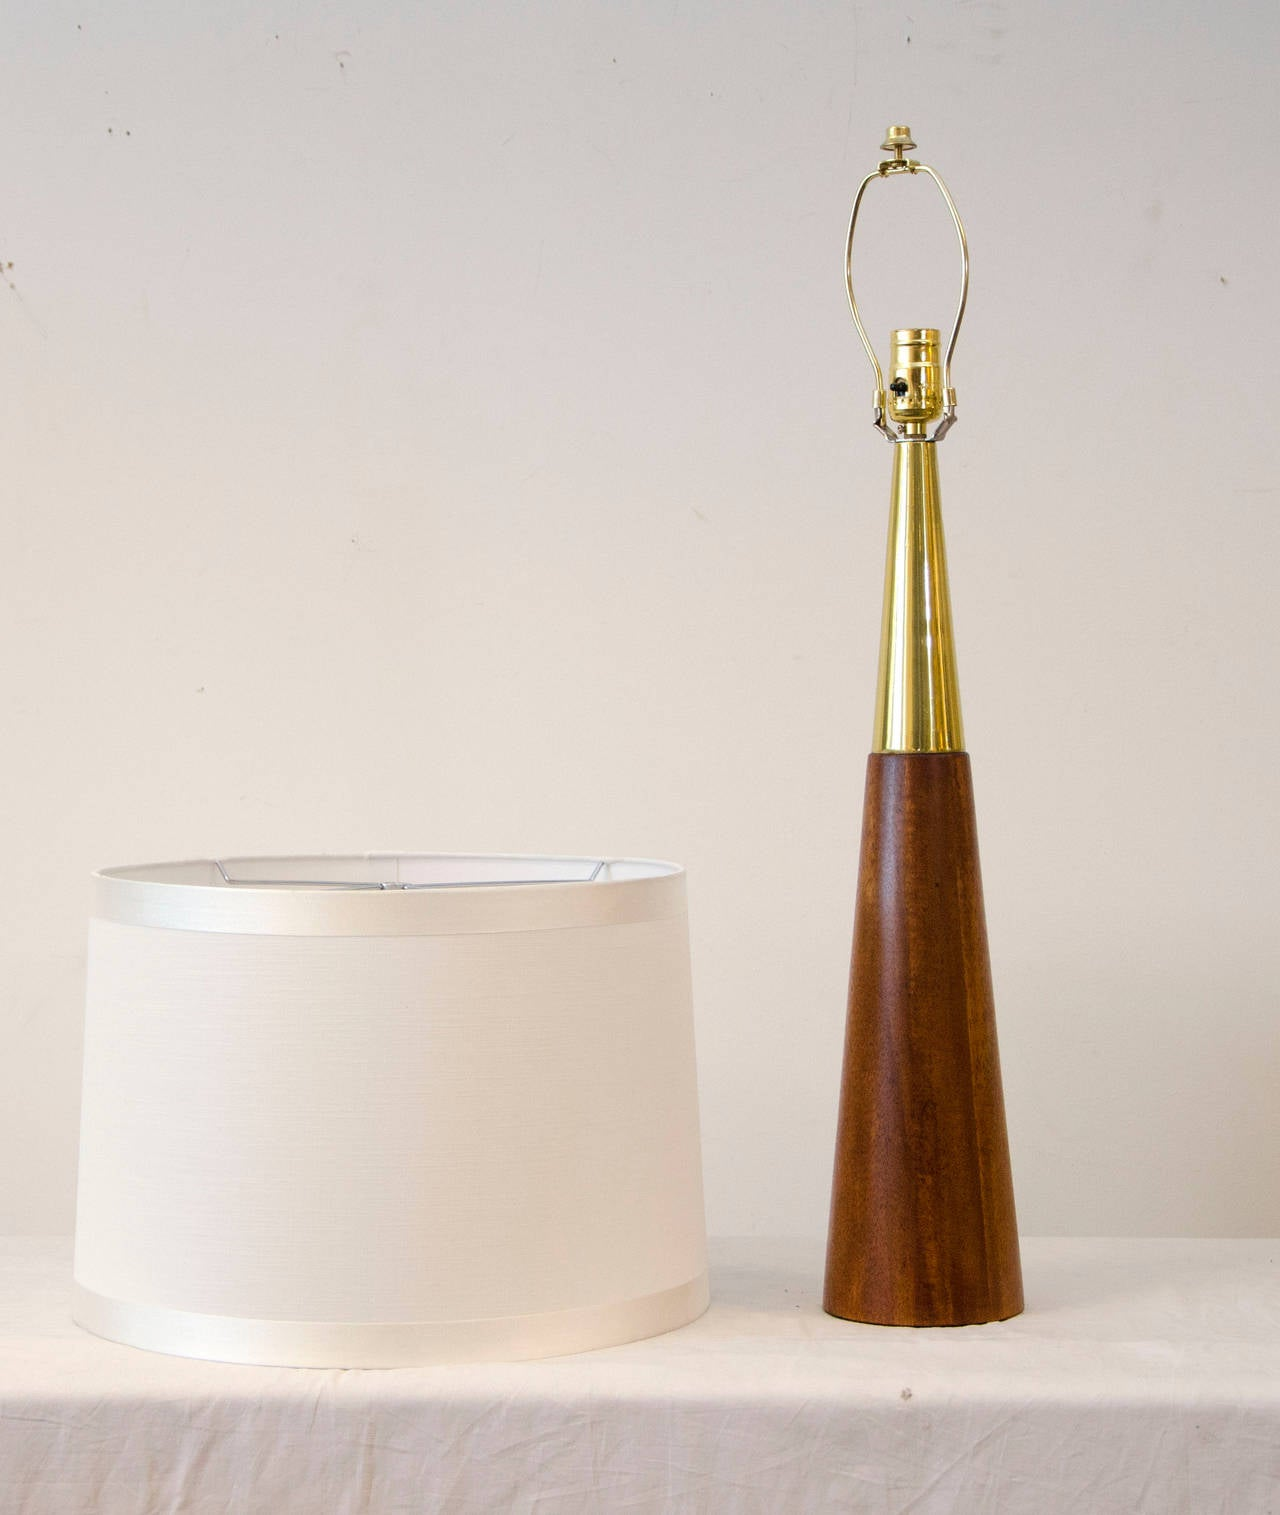 mid century table lamp in the style of tony paul at stdibs - mid century table lamp in the style of tony paul